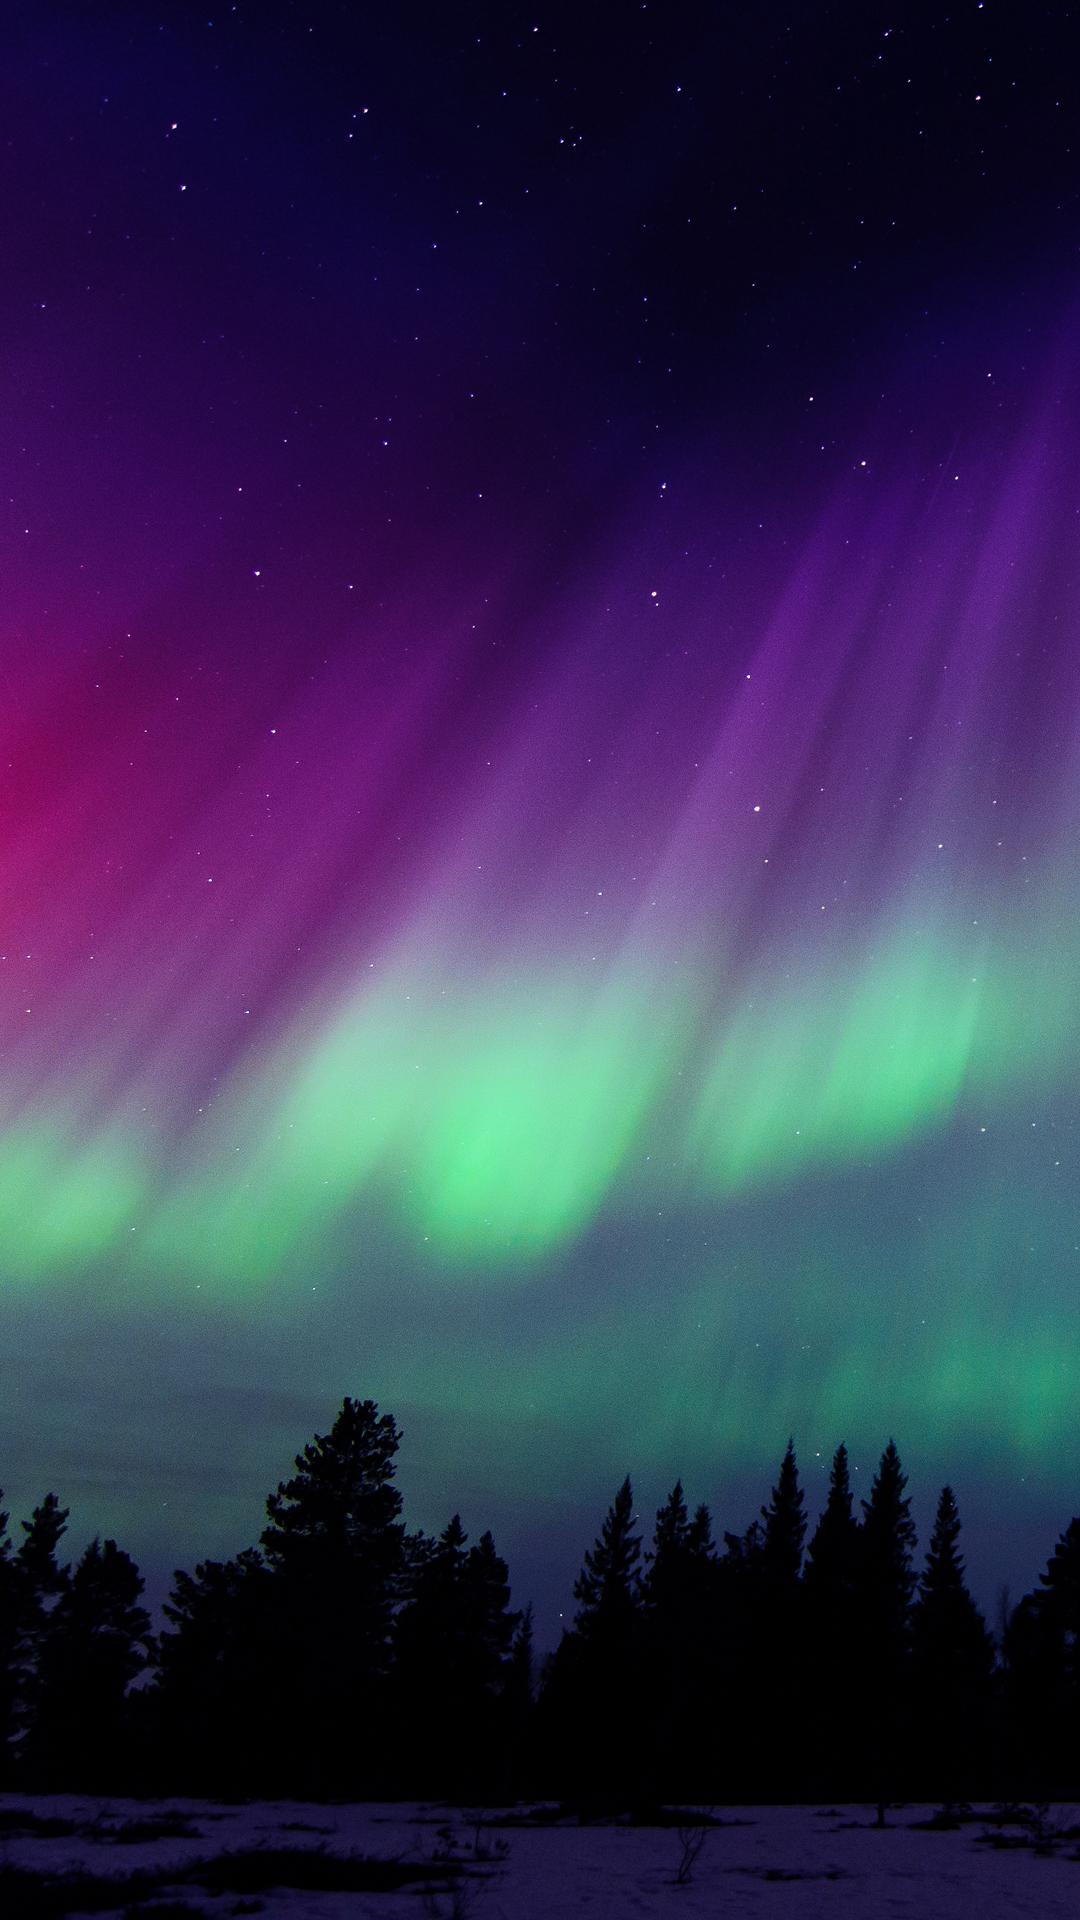 iPhone wallpaper northern lights trees 3Wallpapers : notre sélection de fonds d'écran du 21/02/2018